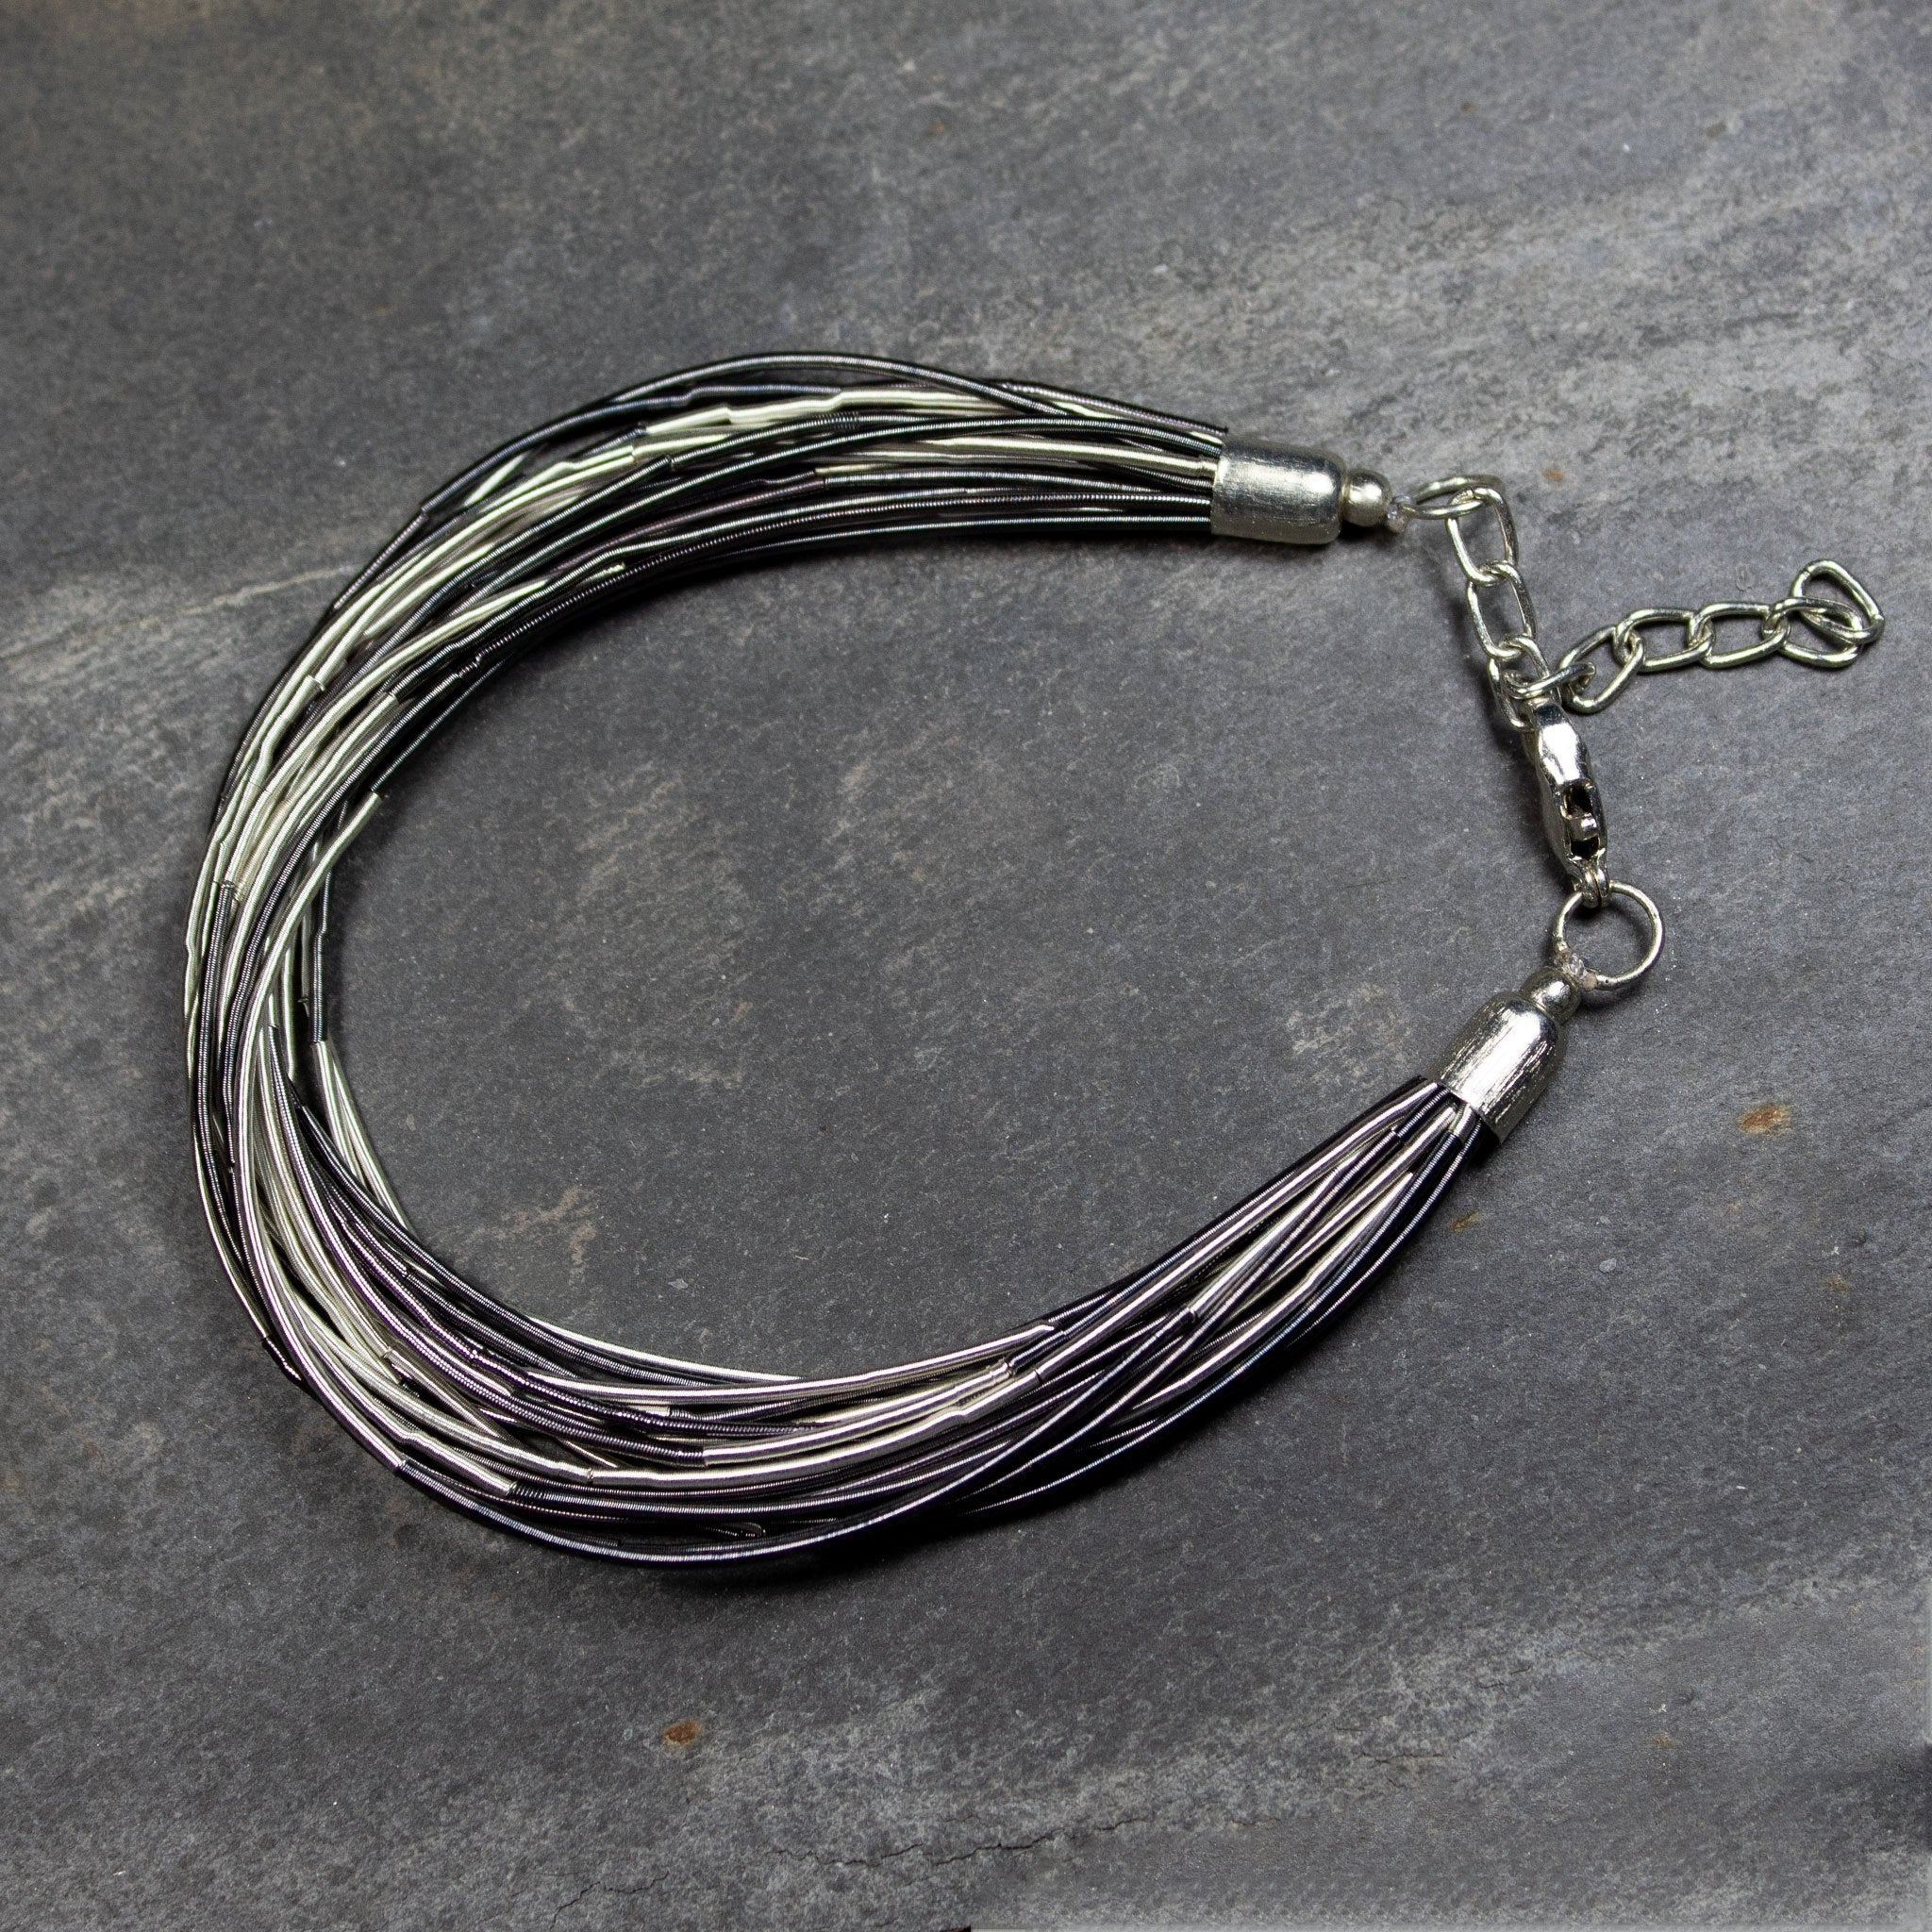 Black & Grey Wire Bracelet | Bracelet - The Naughty Shrew